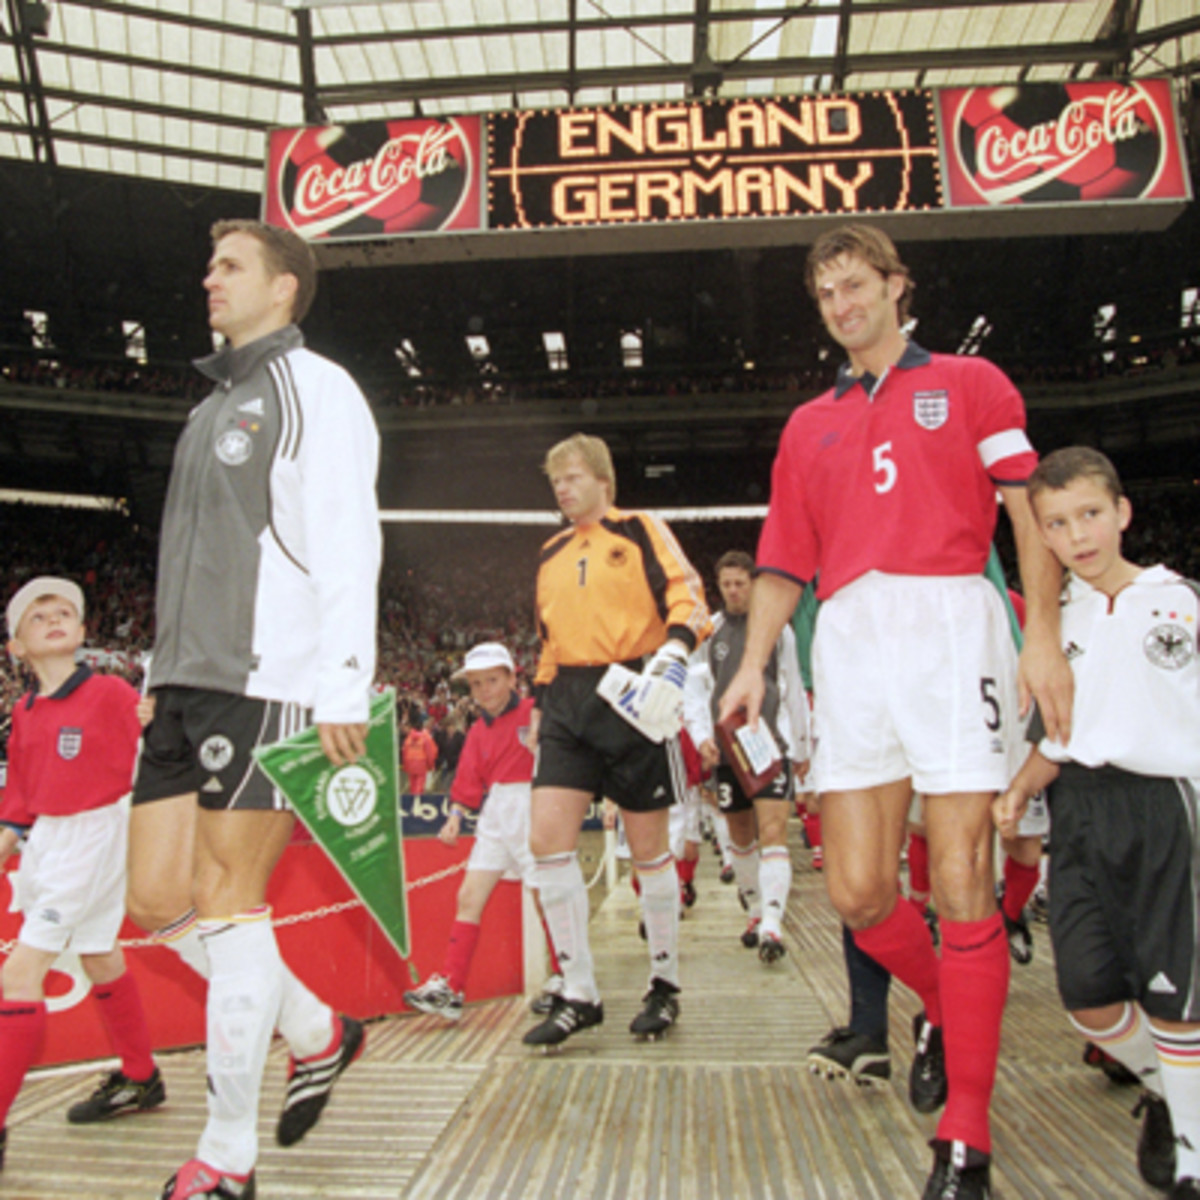 Oliver Bierhoff (gray jacket), Oliver Kahn (1) and Tony Adams (5) walking out onto the field on Oct. 7, 2000 in what was England's final match at the old Wembley Stadium. Germany won 1-0.